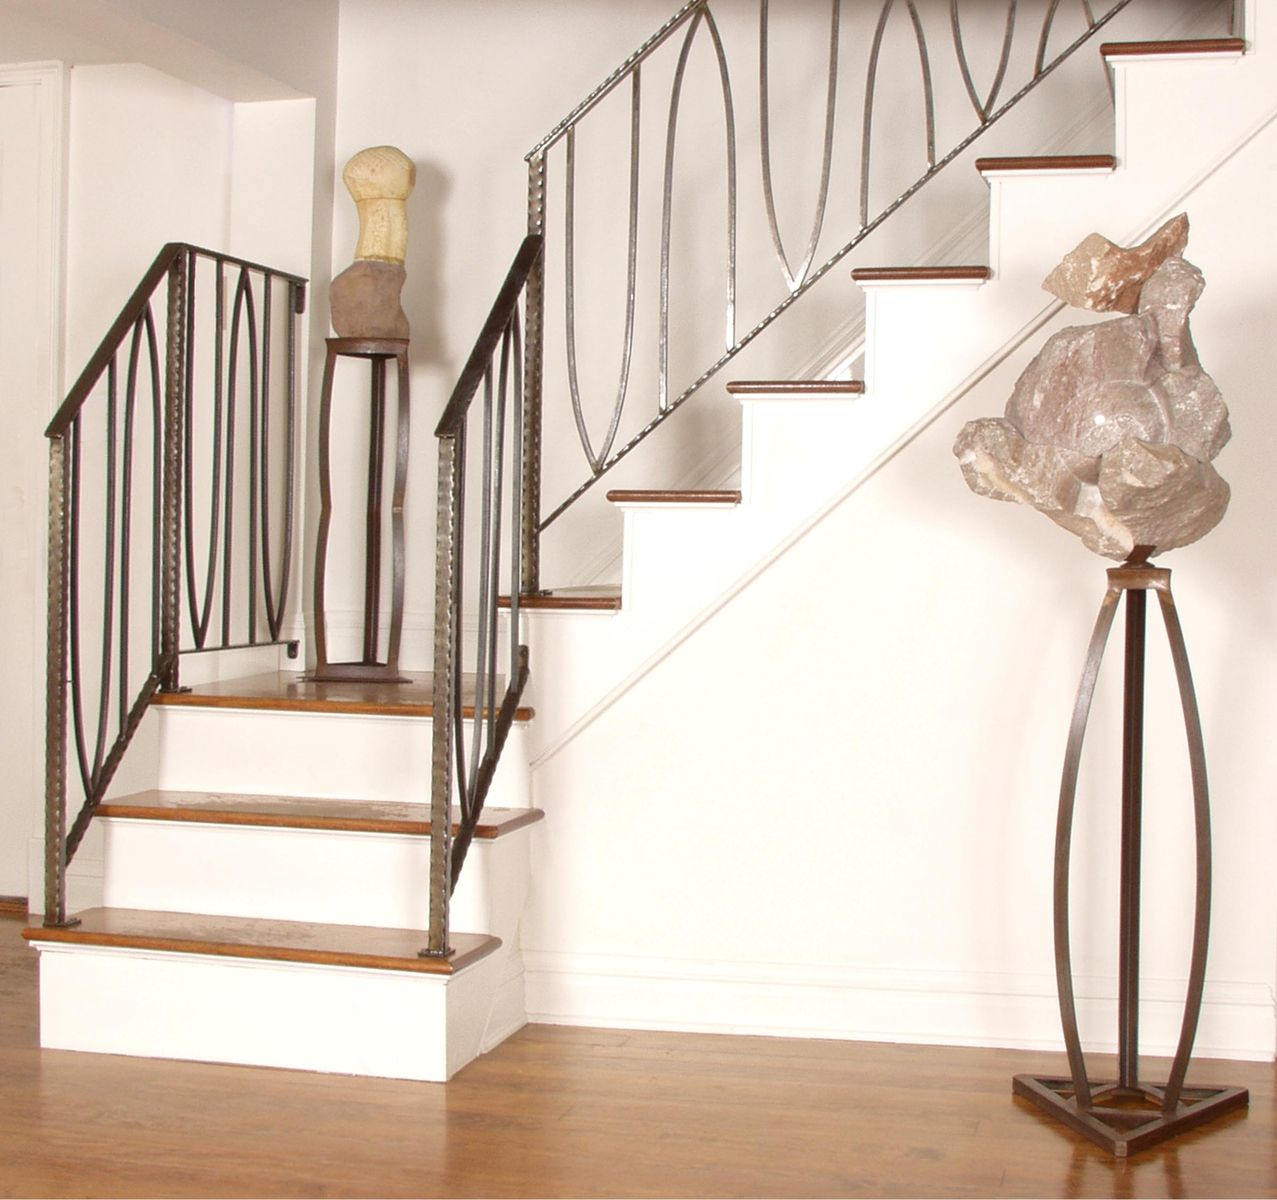 20 Unusual Interior Decorating Ideas For Wooden Stairs: Hand Crafted Anahata Stair Railing By Eric David Laxman